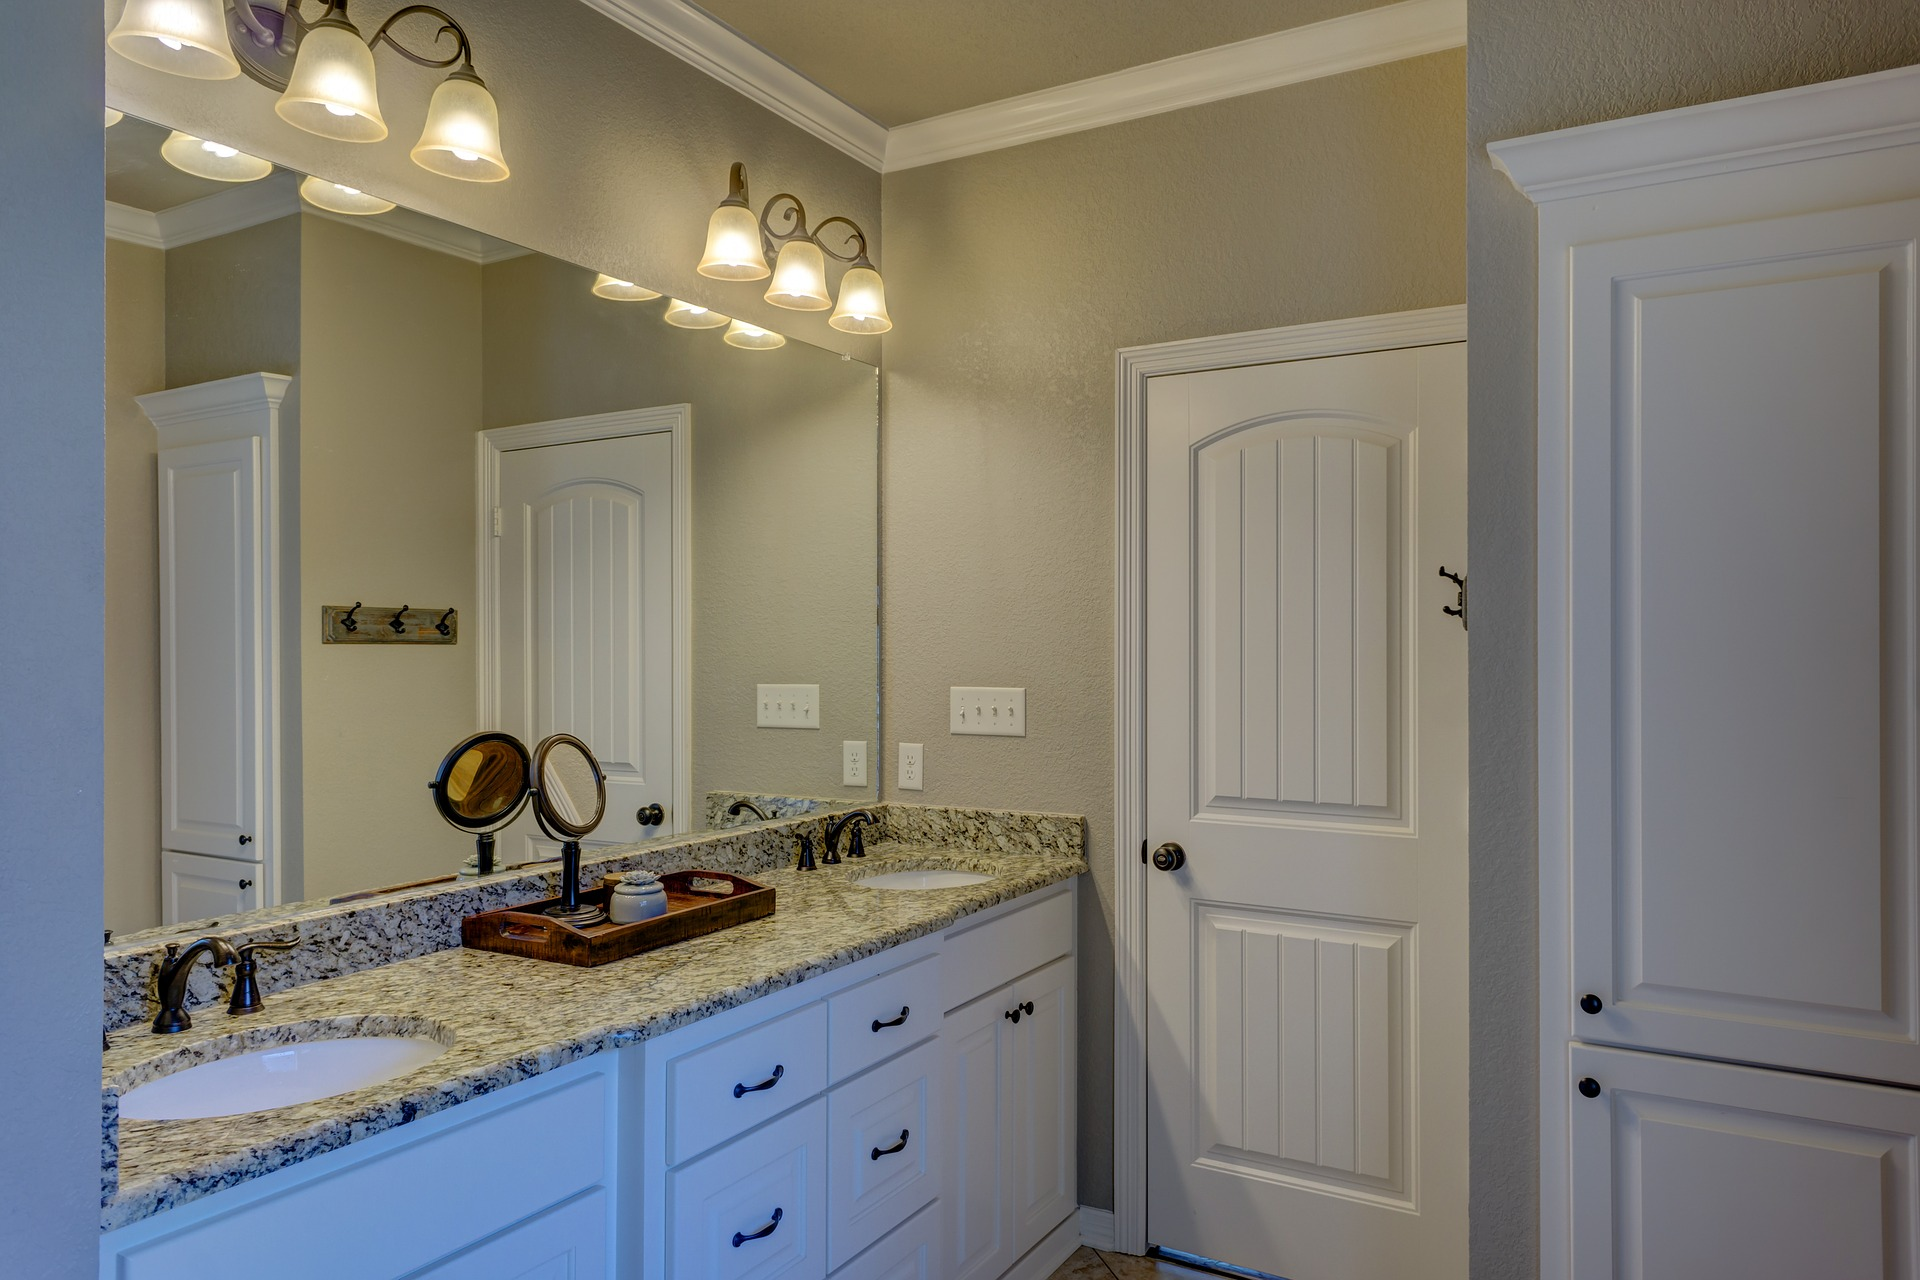 bathroom-remodeling-white-door-cabinets-sconce-fixtures.jpg